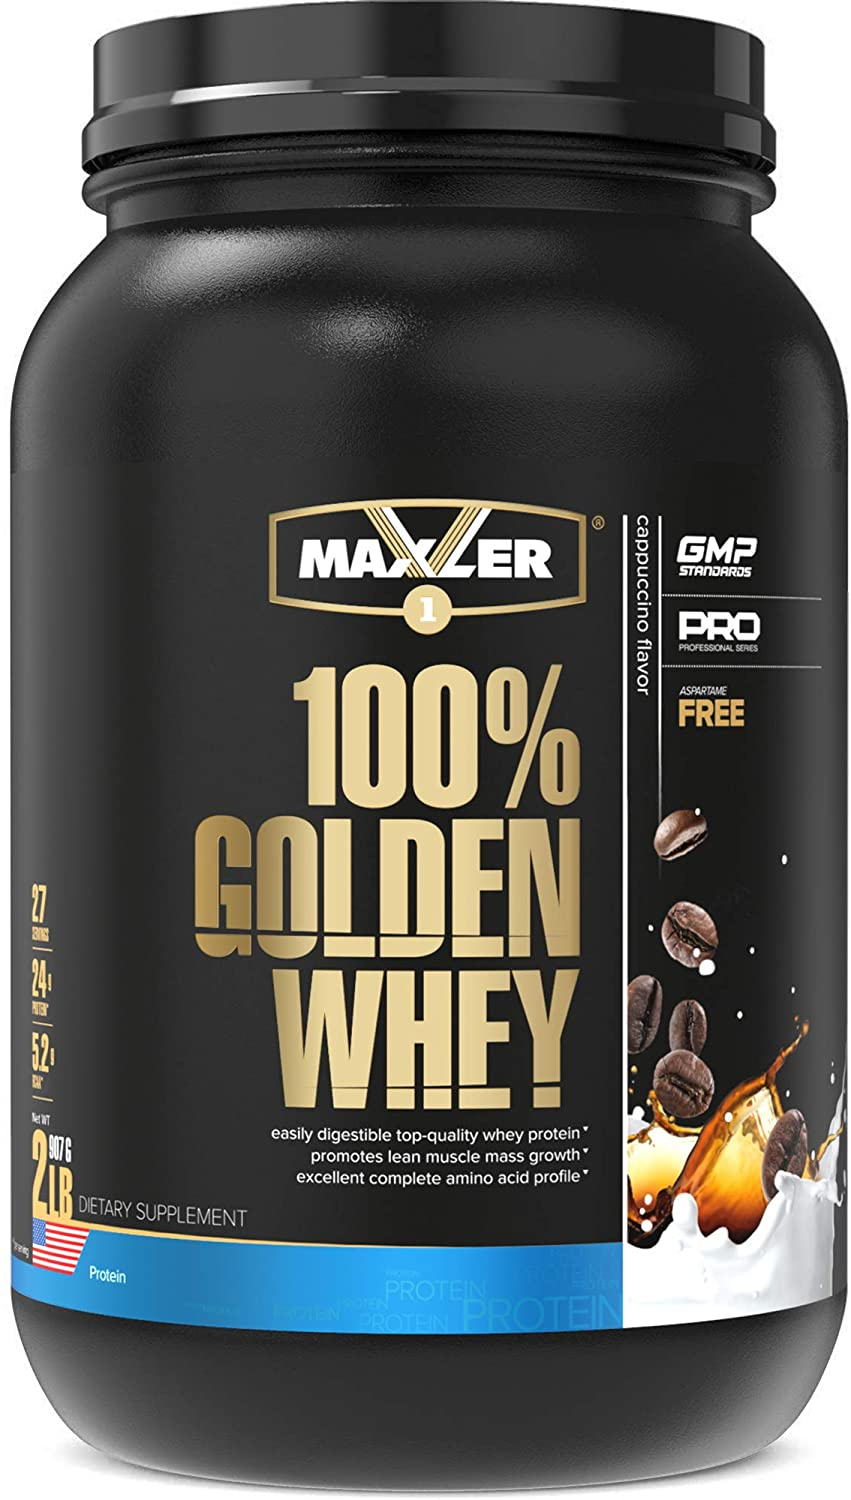 Maxler 100% Golden Whey Protein - 24g of Premium Whey Protein Powder per Serving - Pre, Post & Intra Workout Recovery - Fast-Absorbing Whey Hydrolysate, Isolate & Concentrate Blend - Cappuccino 2 lbs